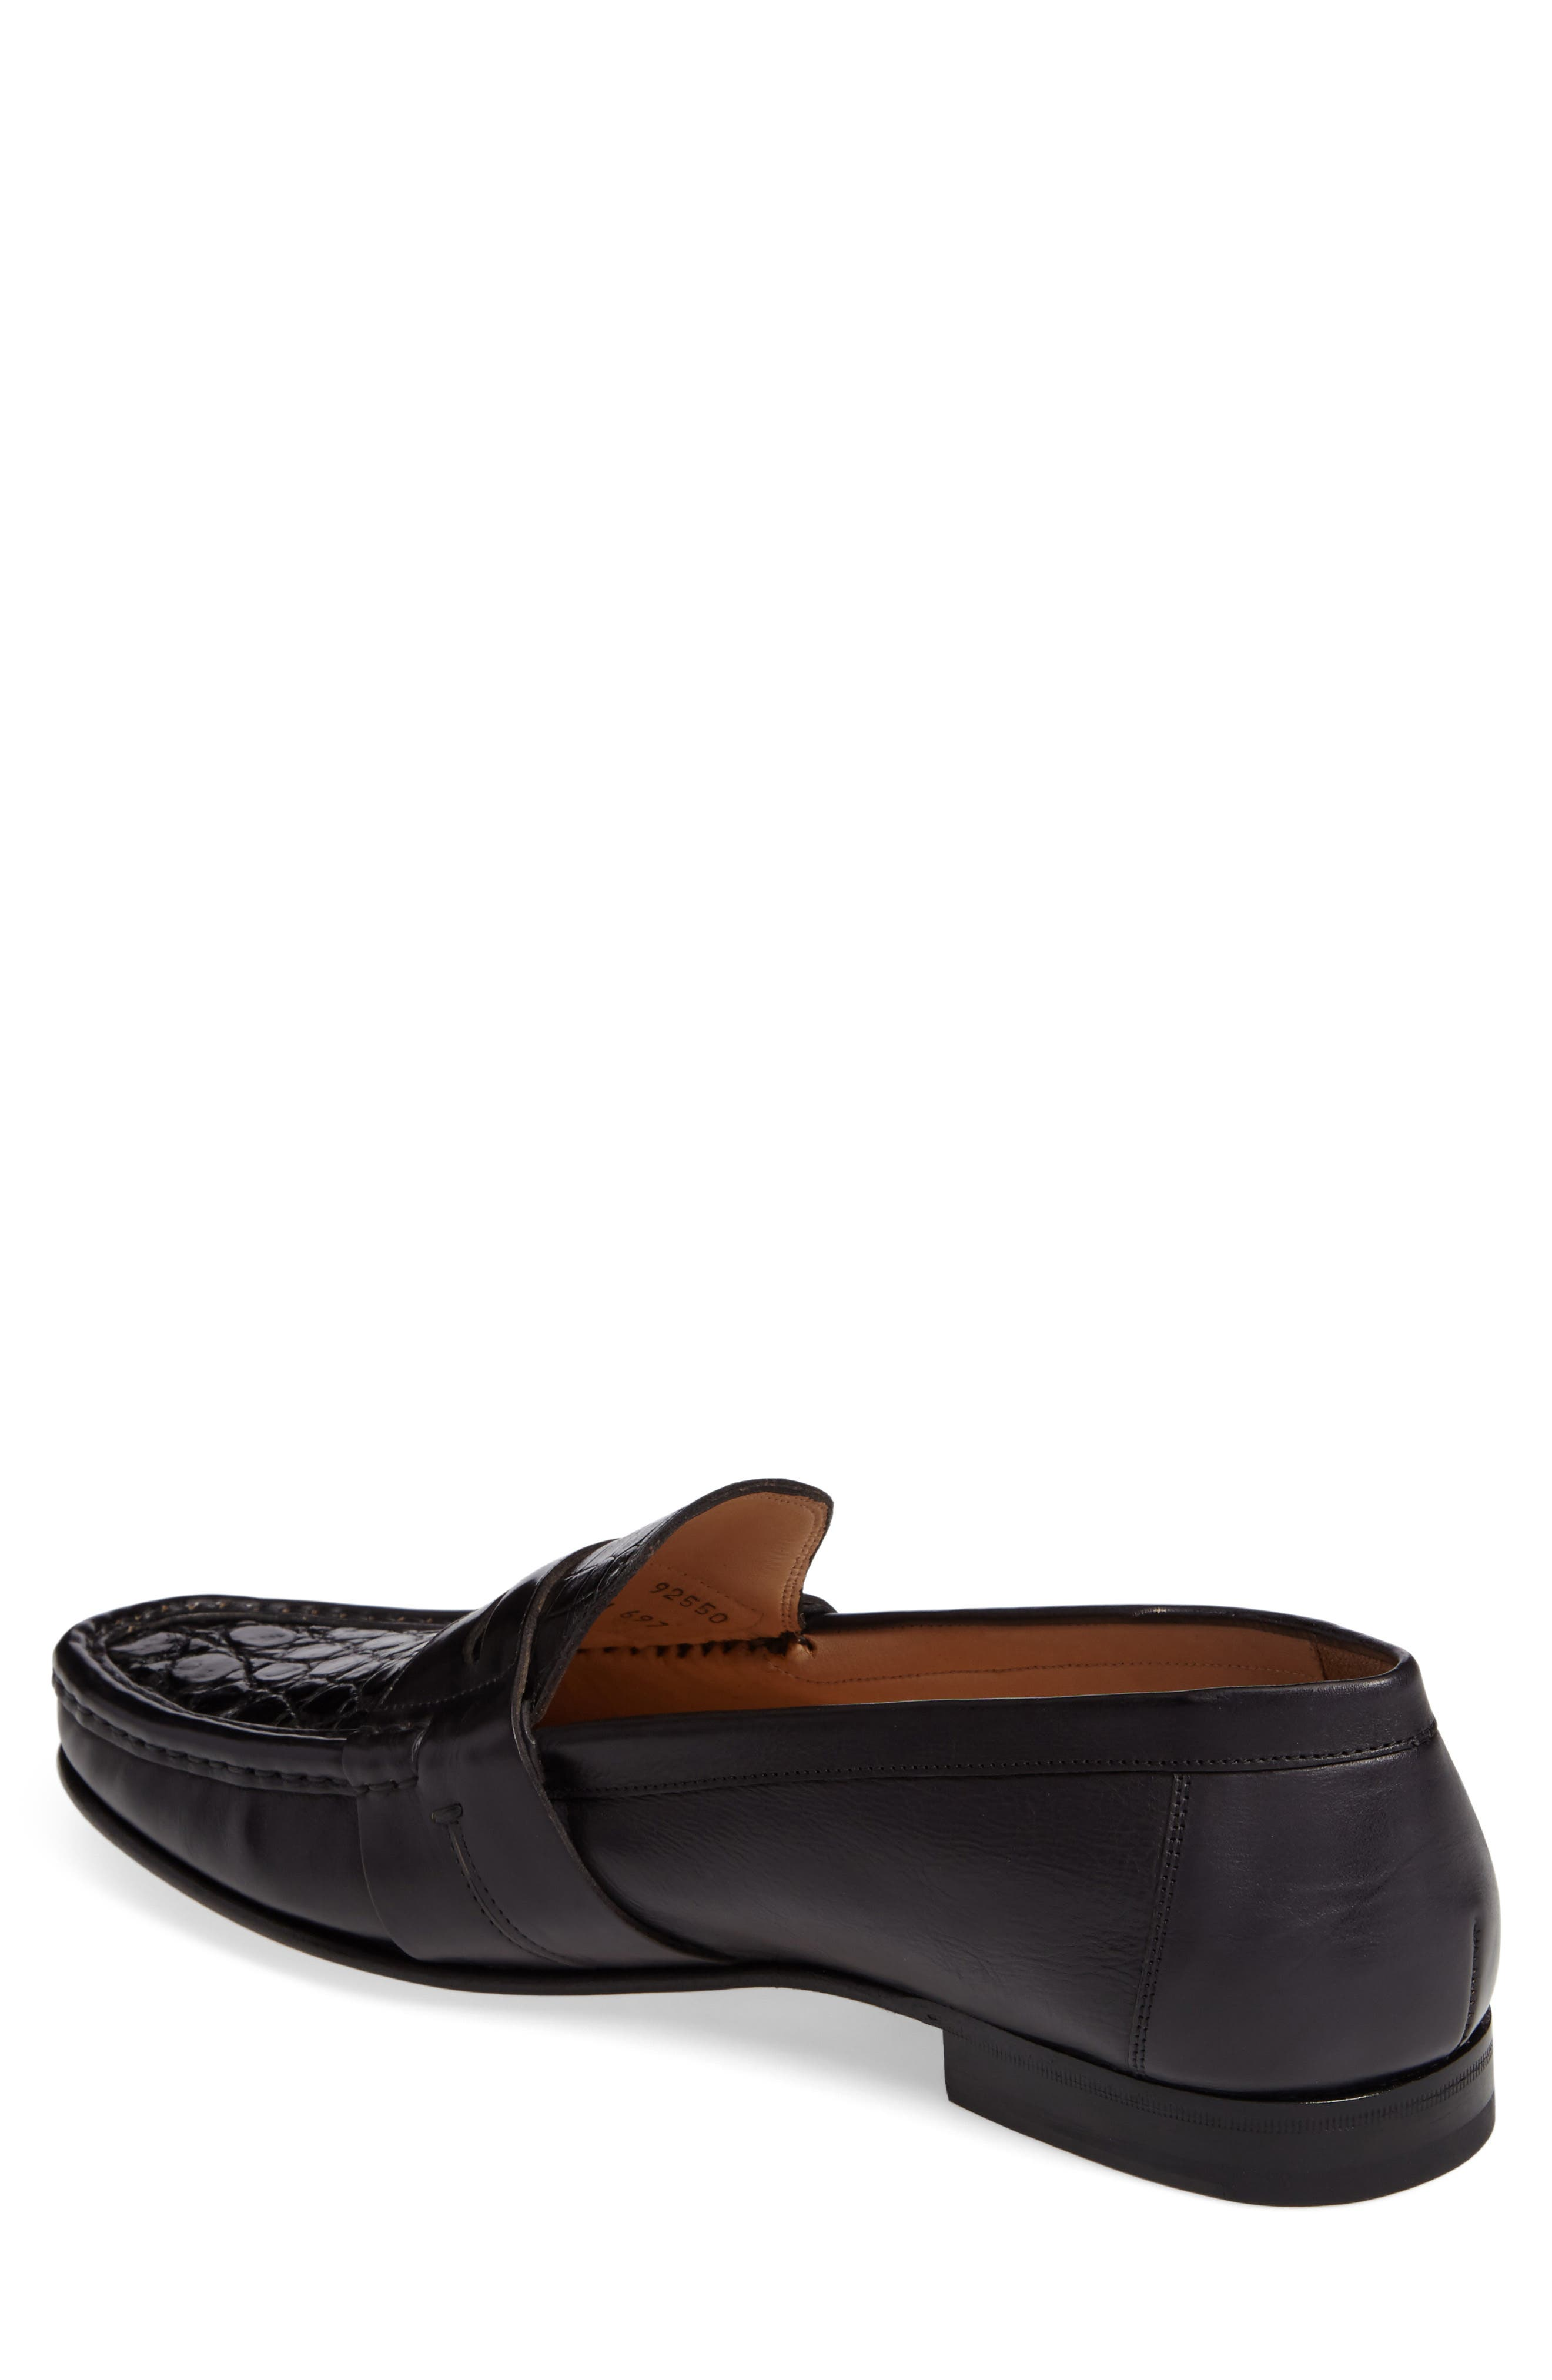 Marconi Penny Loafer,                             Alternate thumbnail 3, color,